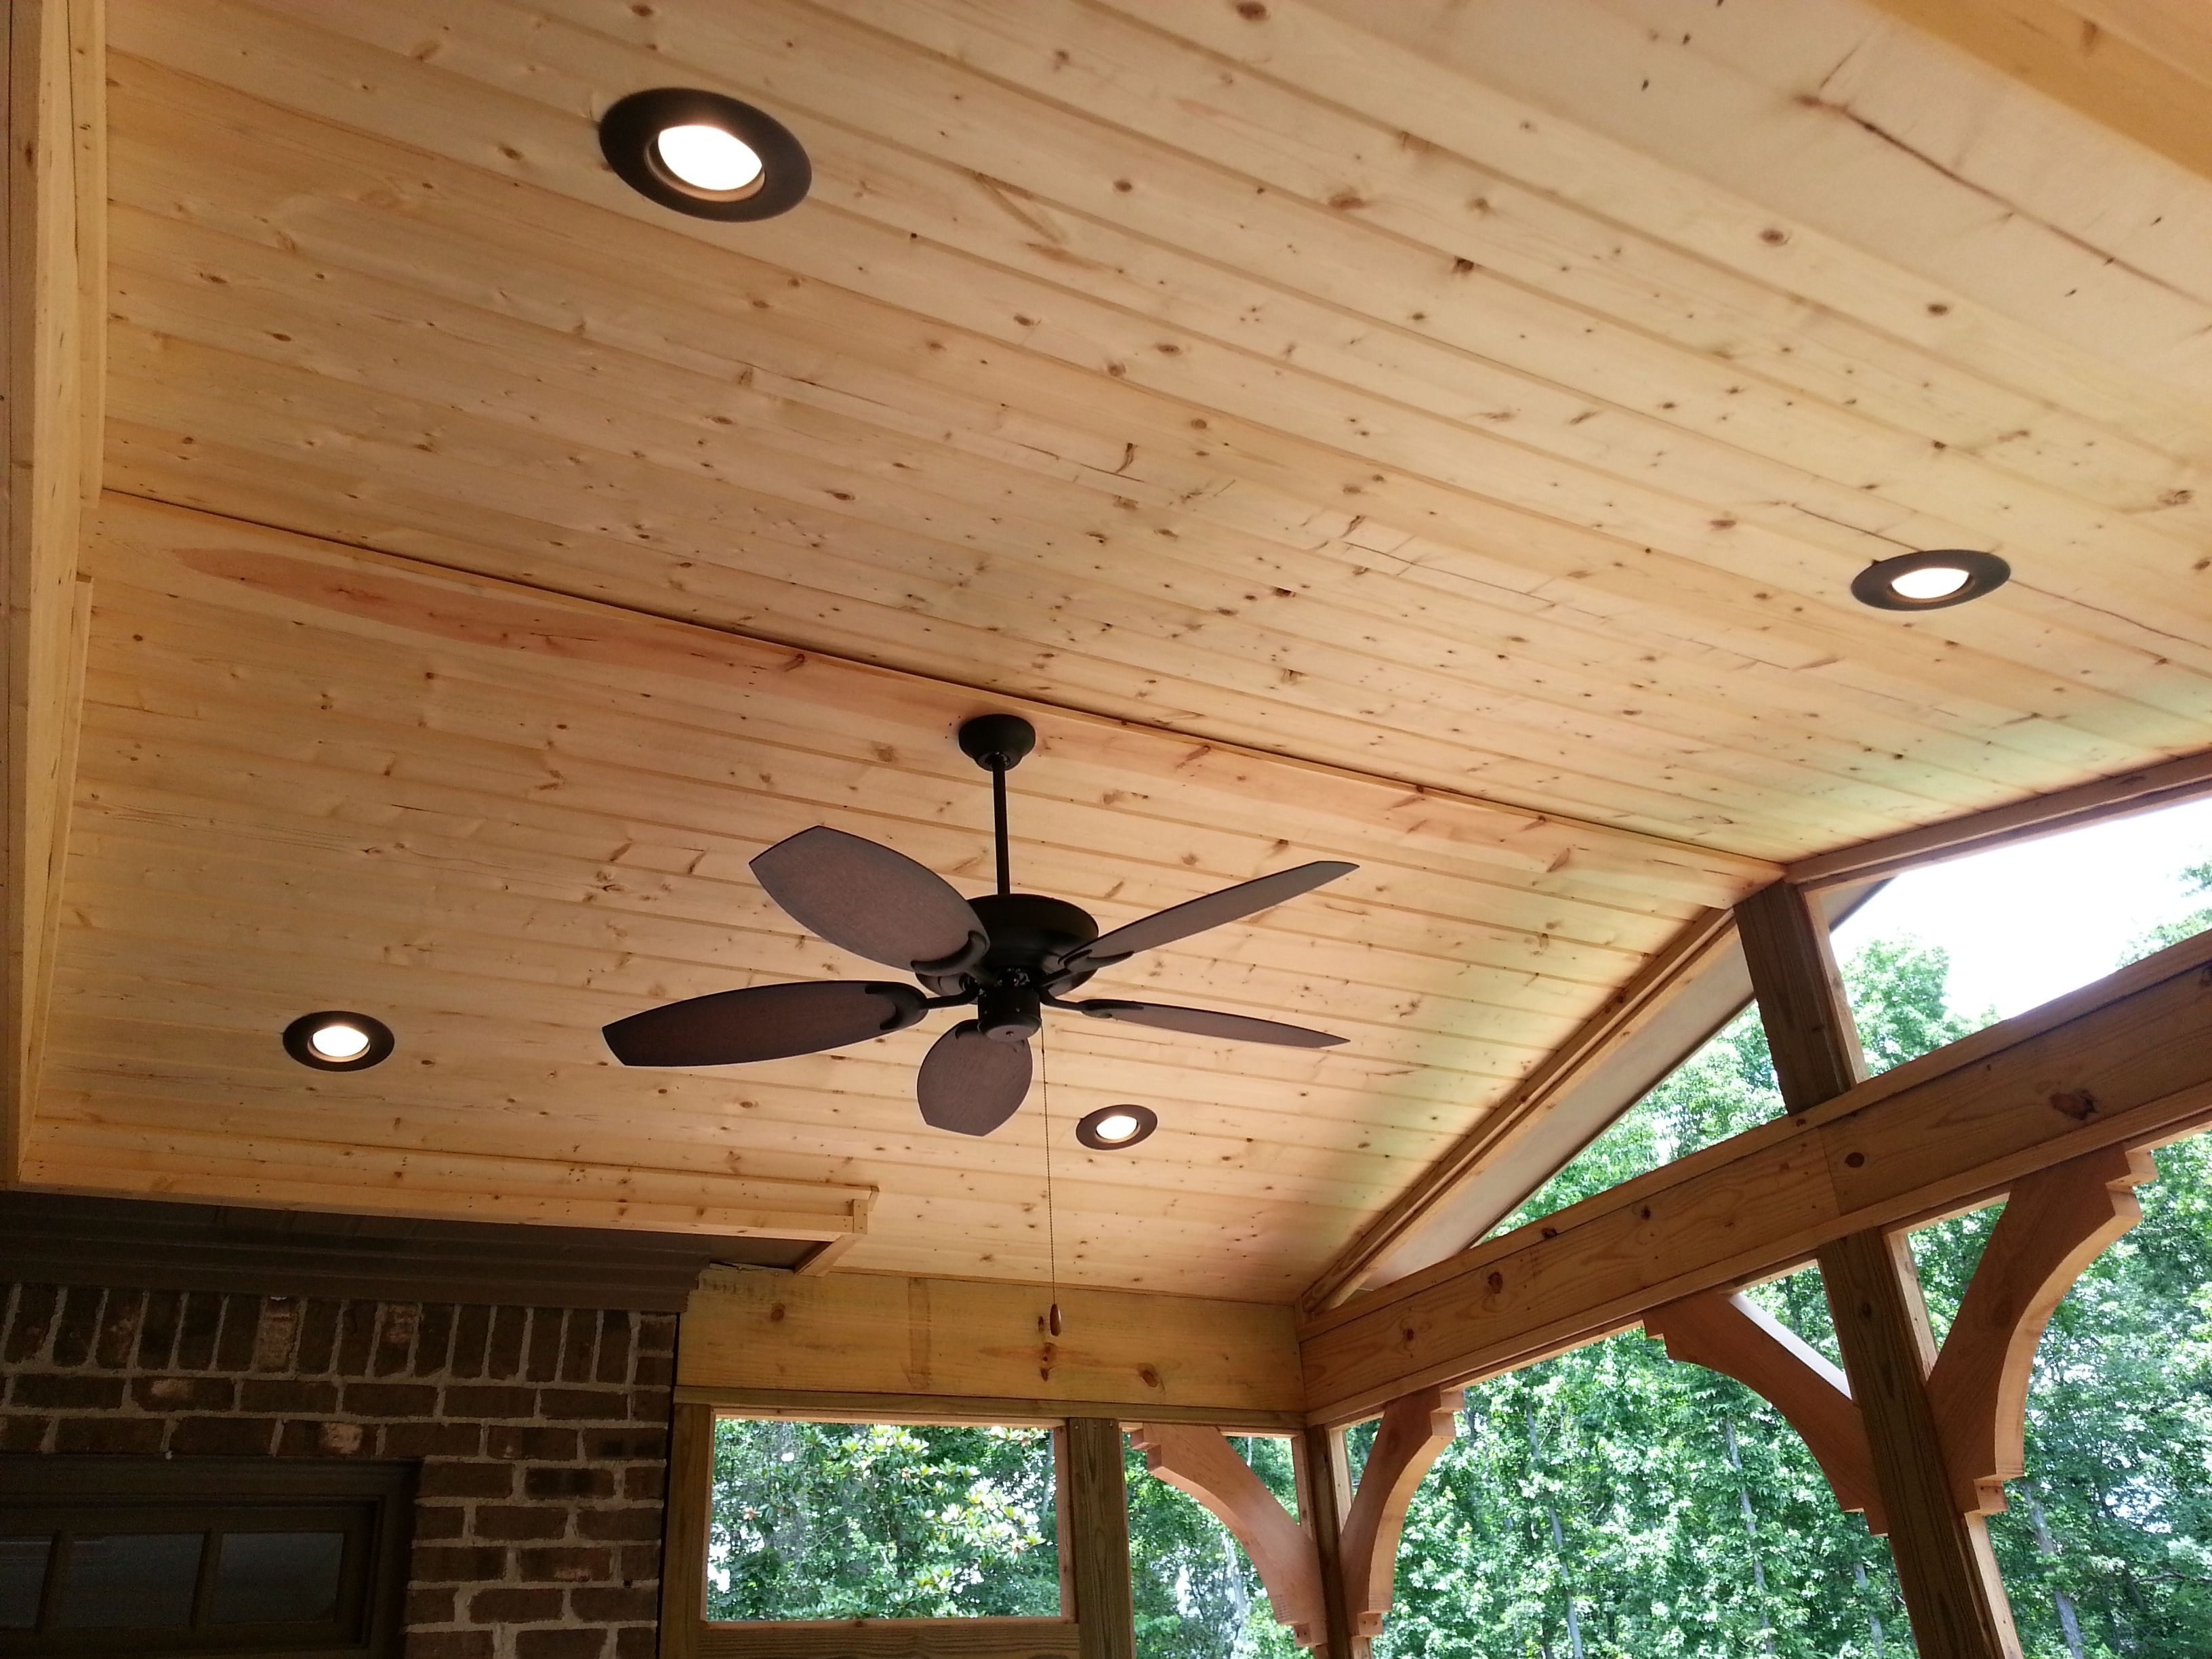 Outdoor Ceiling Fans For Screened Porches Pertaining To Well Liked Finished Ceiling With Ceiling Fan And Can Lights – Design Ideas (View 16 of 20)